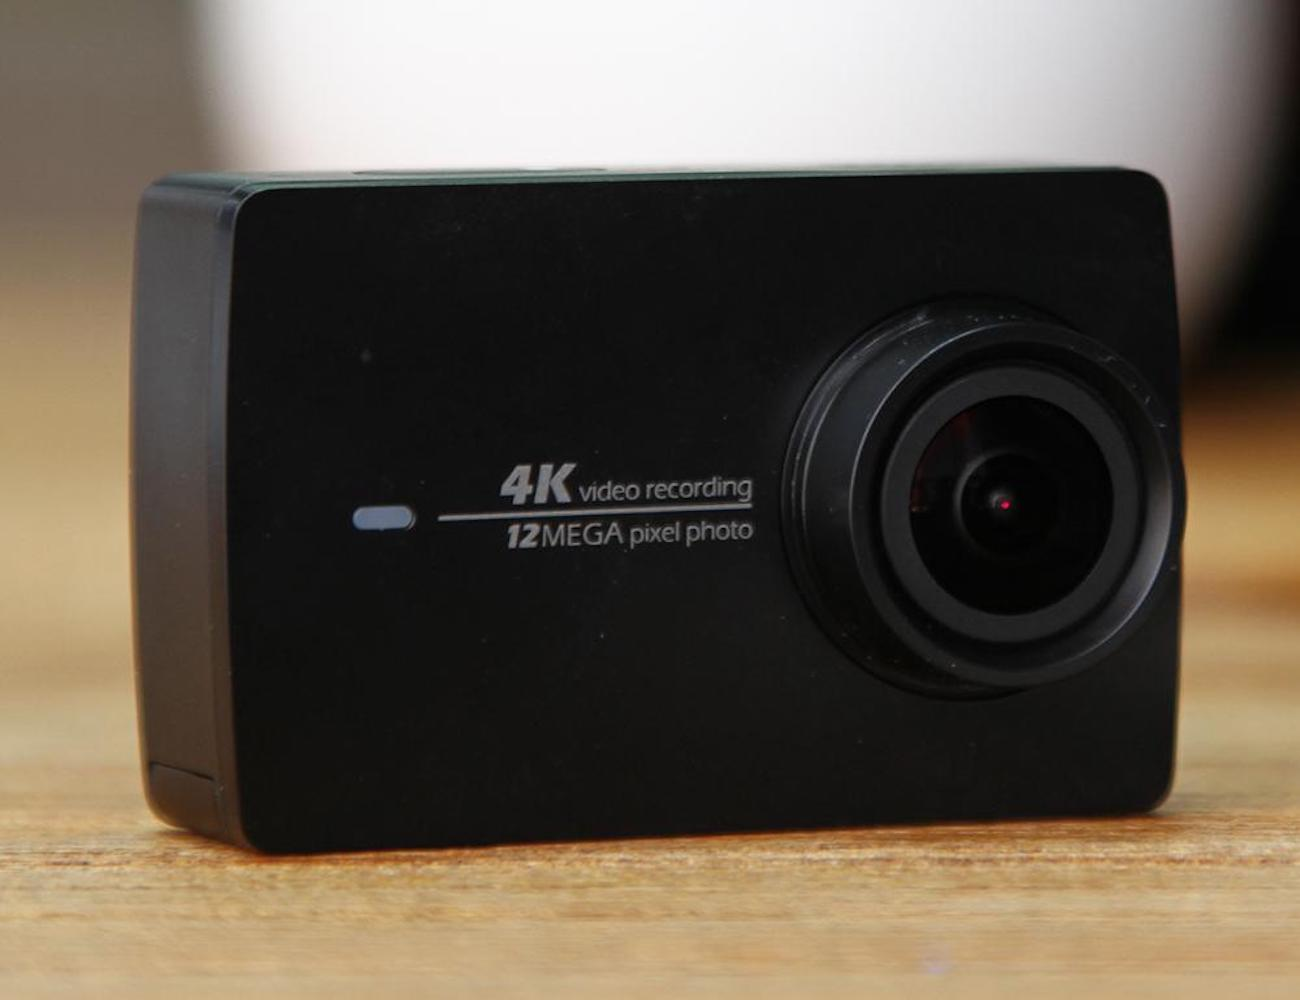 YI 4K Action Camera Compact Activity Camera gives you detailed footage